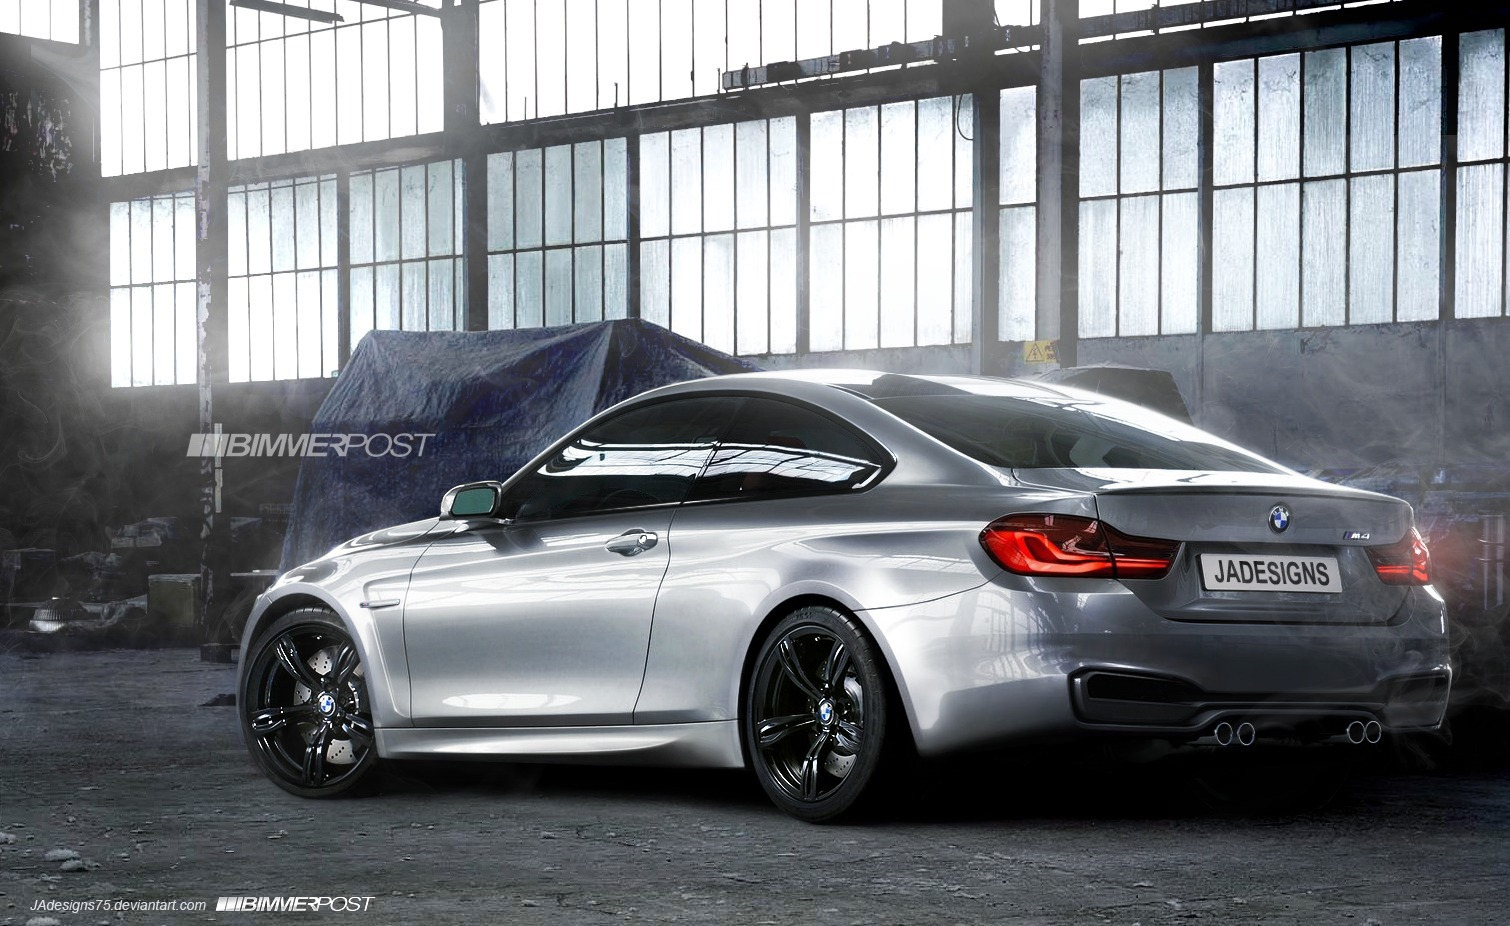 nancys car designs 2014 bmw m4 coupe rendered what do. Black Bedroom Furniture Sets. Home Design Ideas